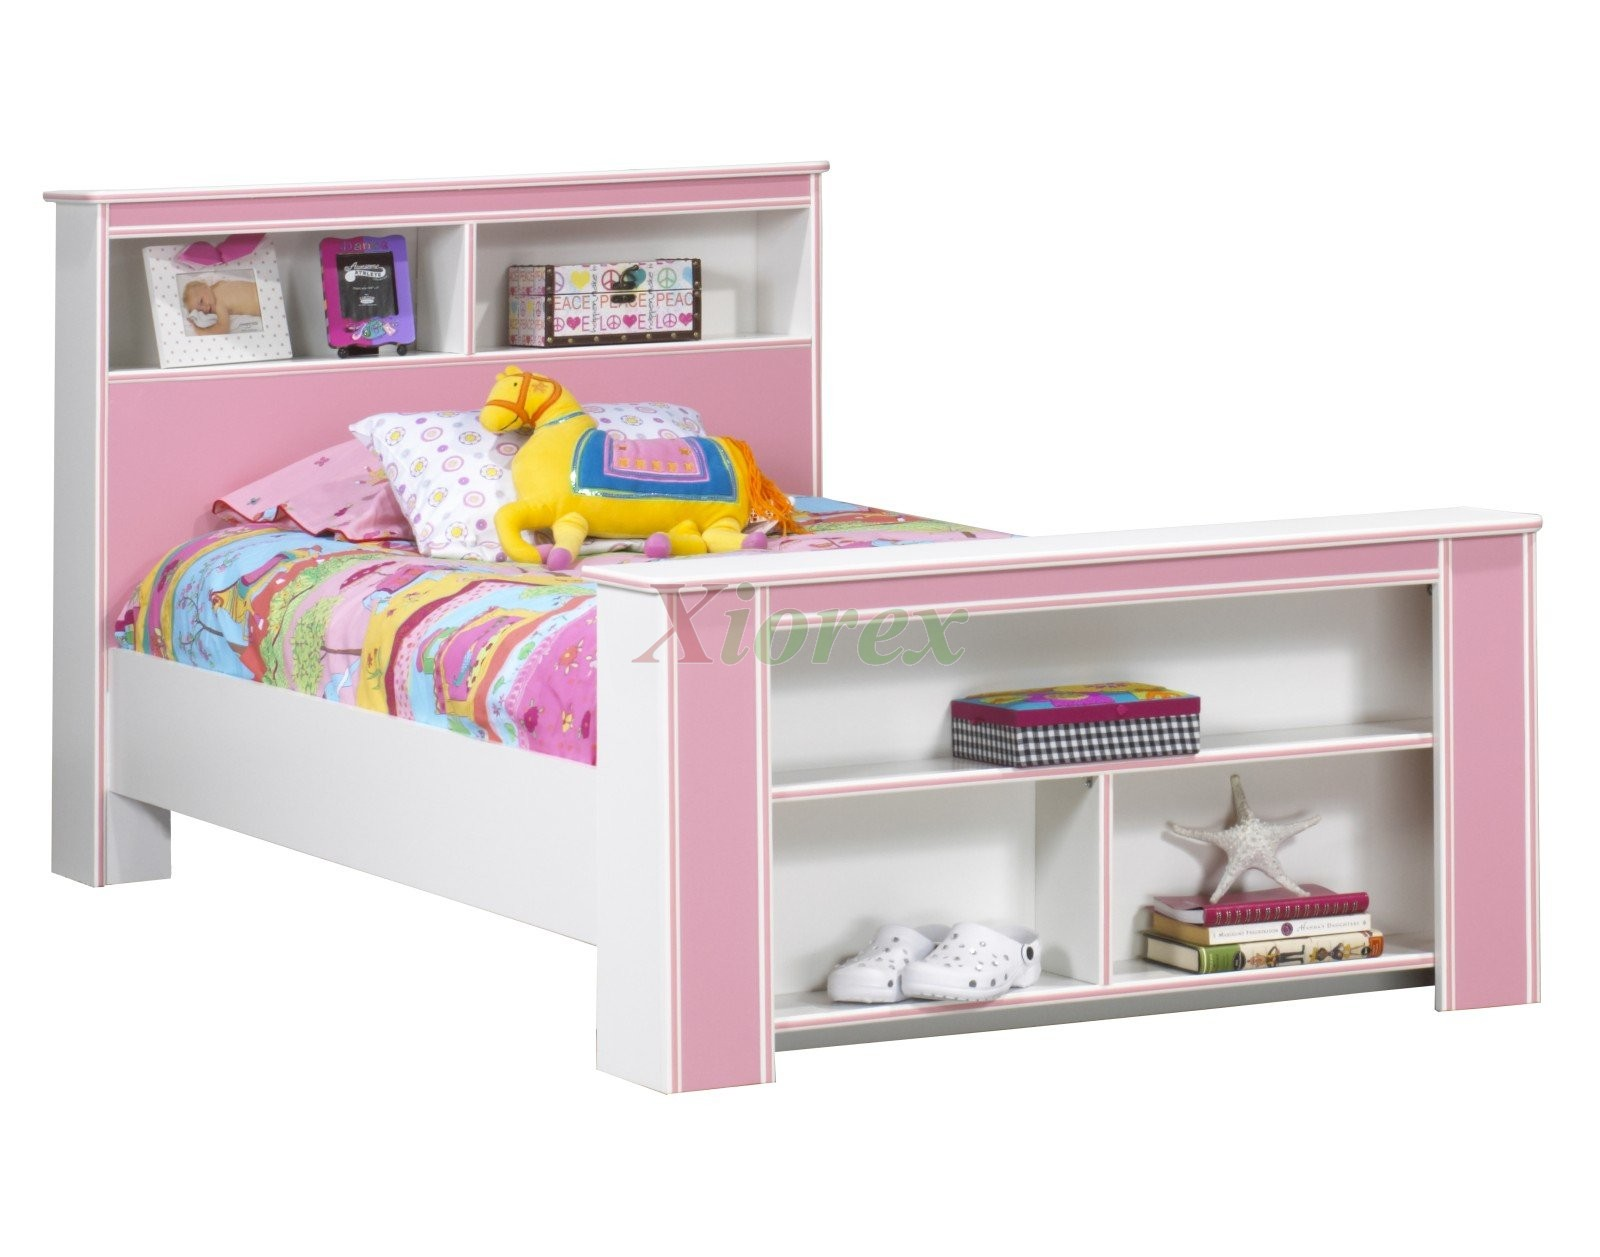 Little tikes doll house toddler bed like newrare in burlington - Little Tikes Doll House Toddler Bed Like Newrare In Burlington 24